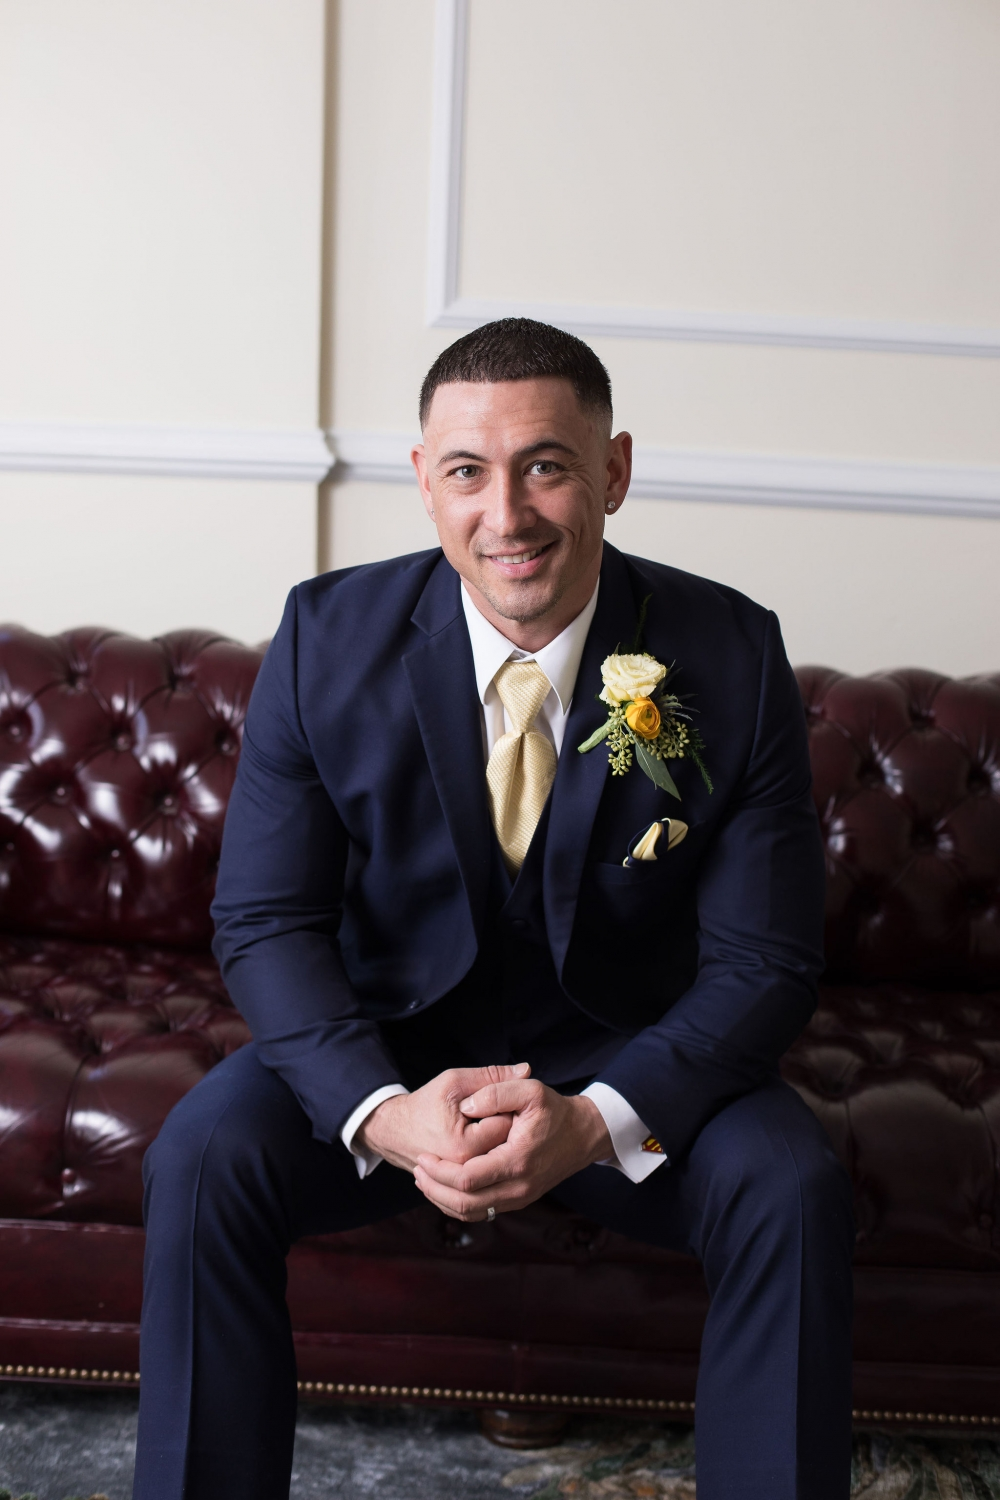 groom with yellow boutonniere